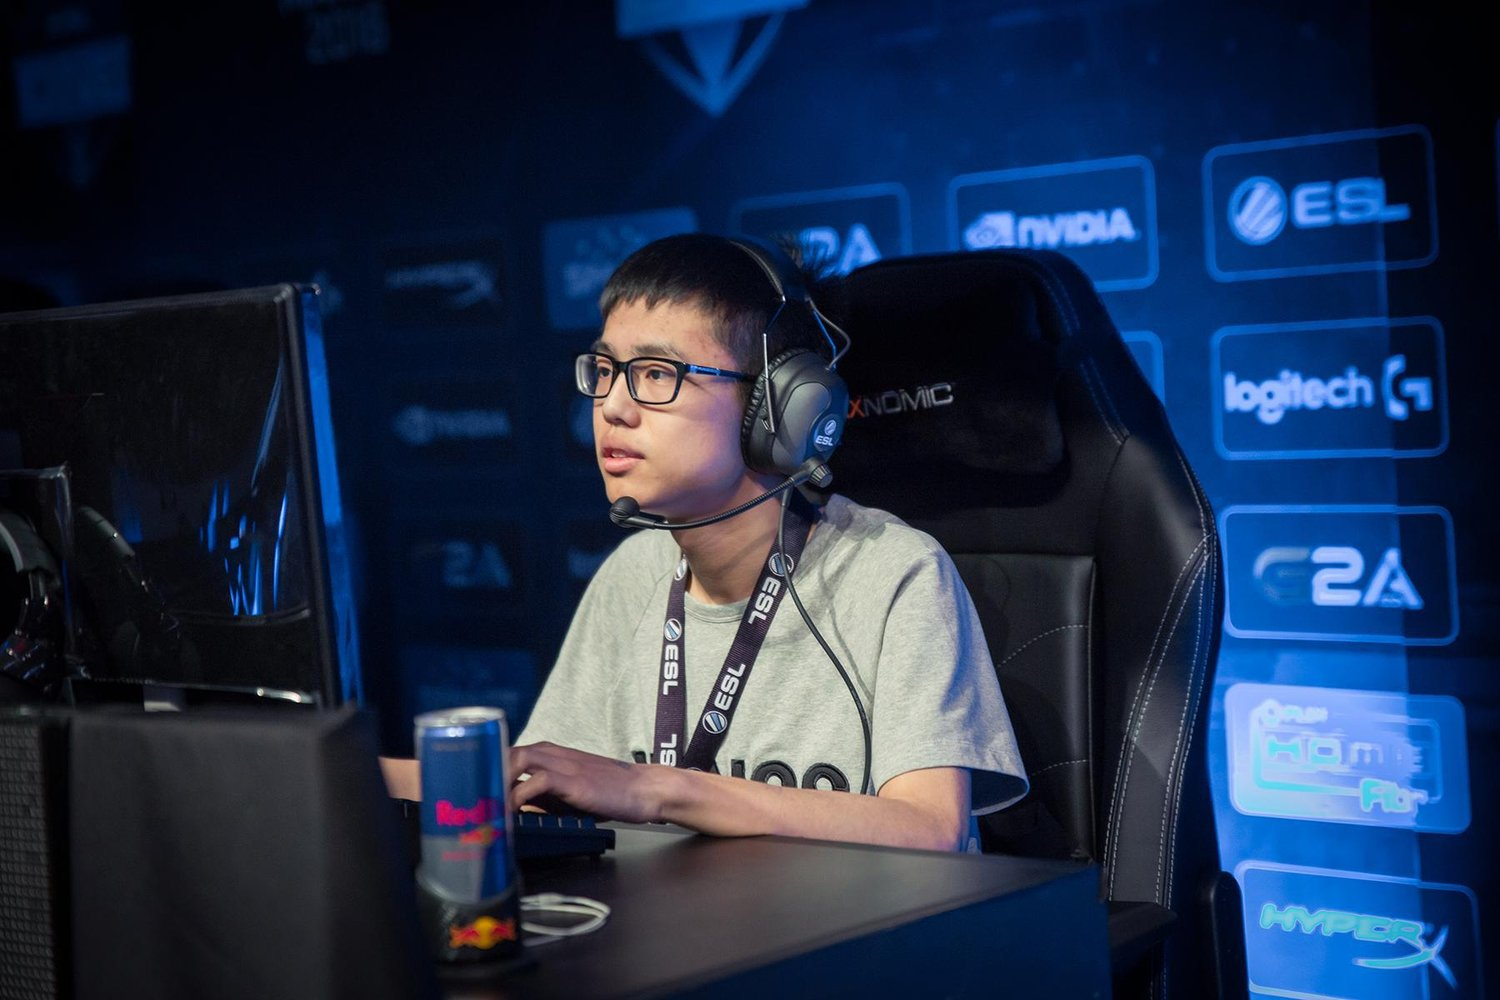 Team Liquid to field Shaow in place of Miracle at the Chongqing Major.